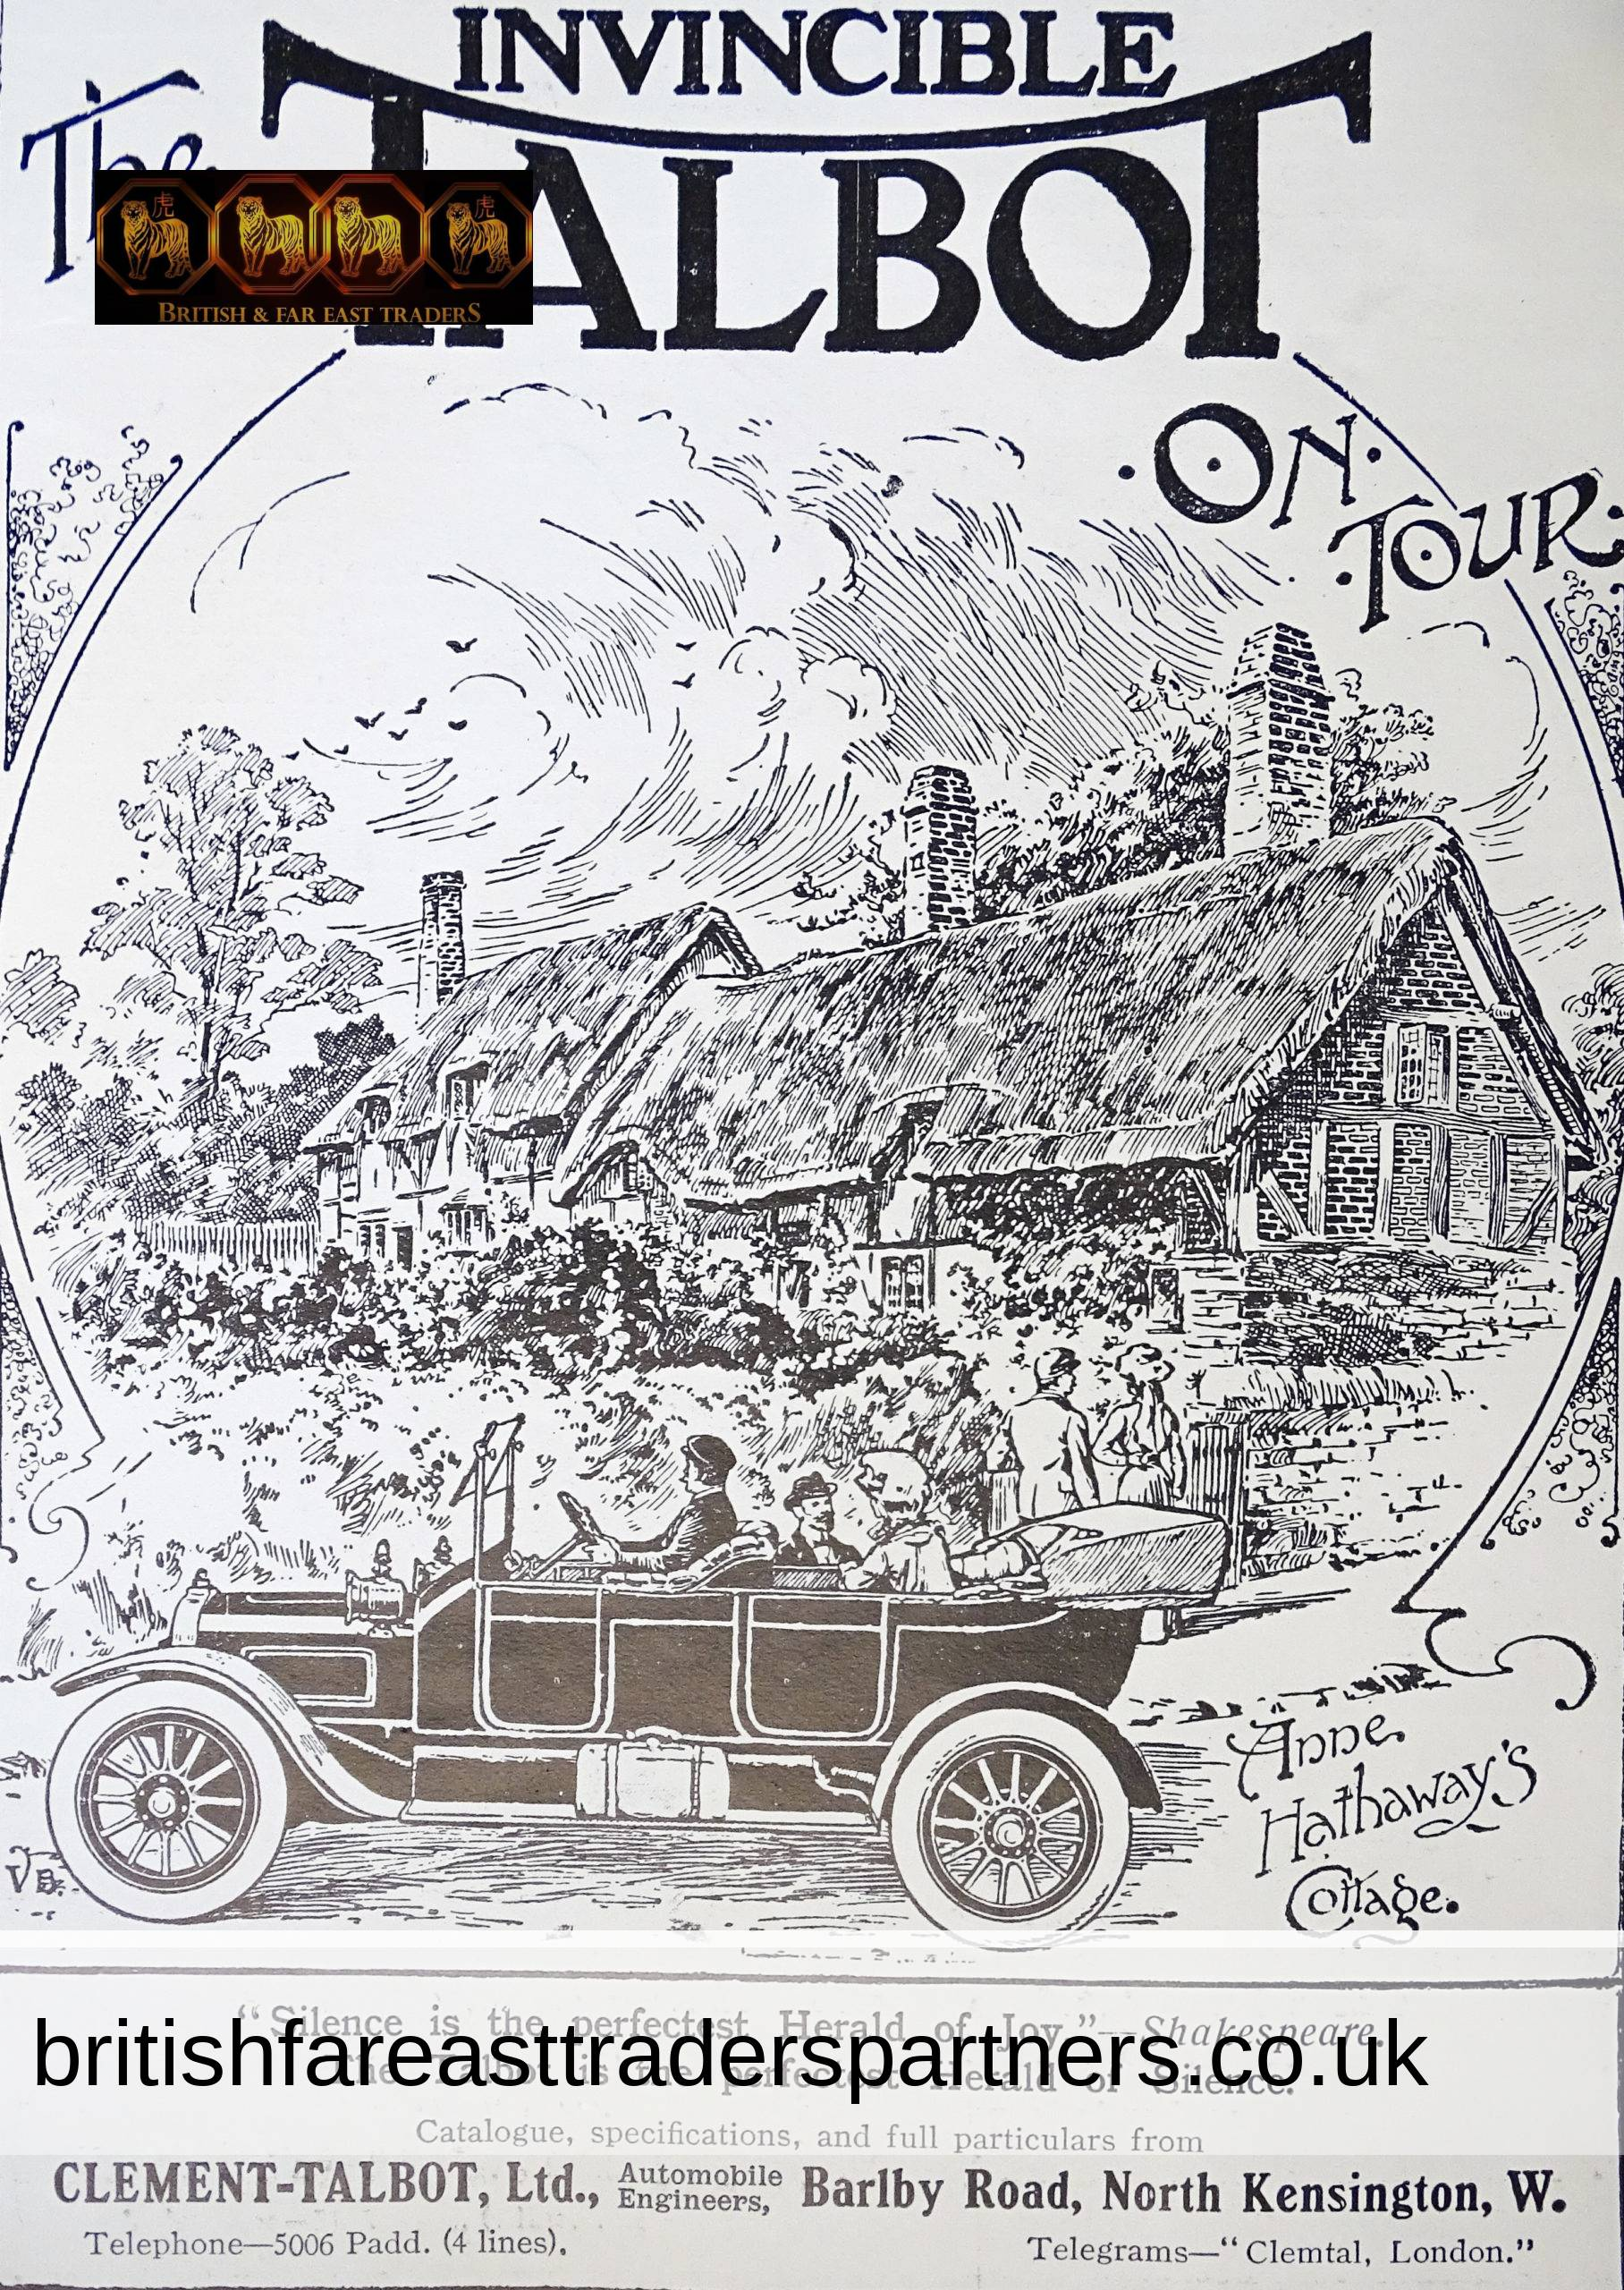 ANTIQUE 1st JULY 1911 The INVINCIBLE TALBOT on TOUR Anne Hathaway's COTTAGE Clement-Talbot Ltd The SPHERE Magazine Ad COLLECTABLE TRANSPORT EPHEMERA ADVERTISEMENT